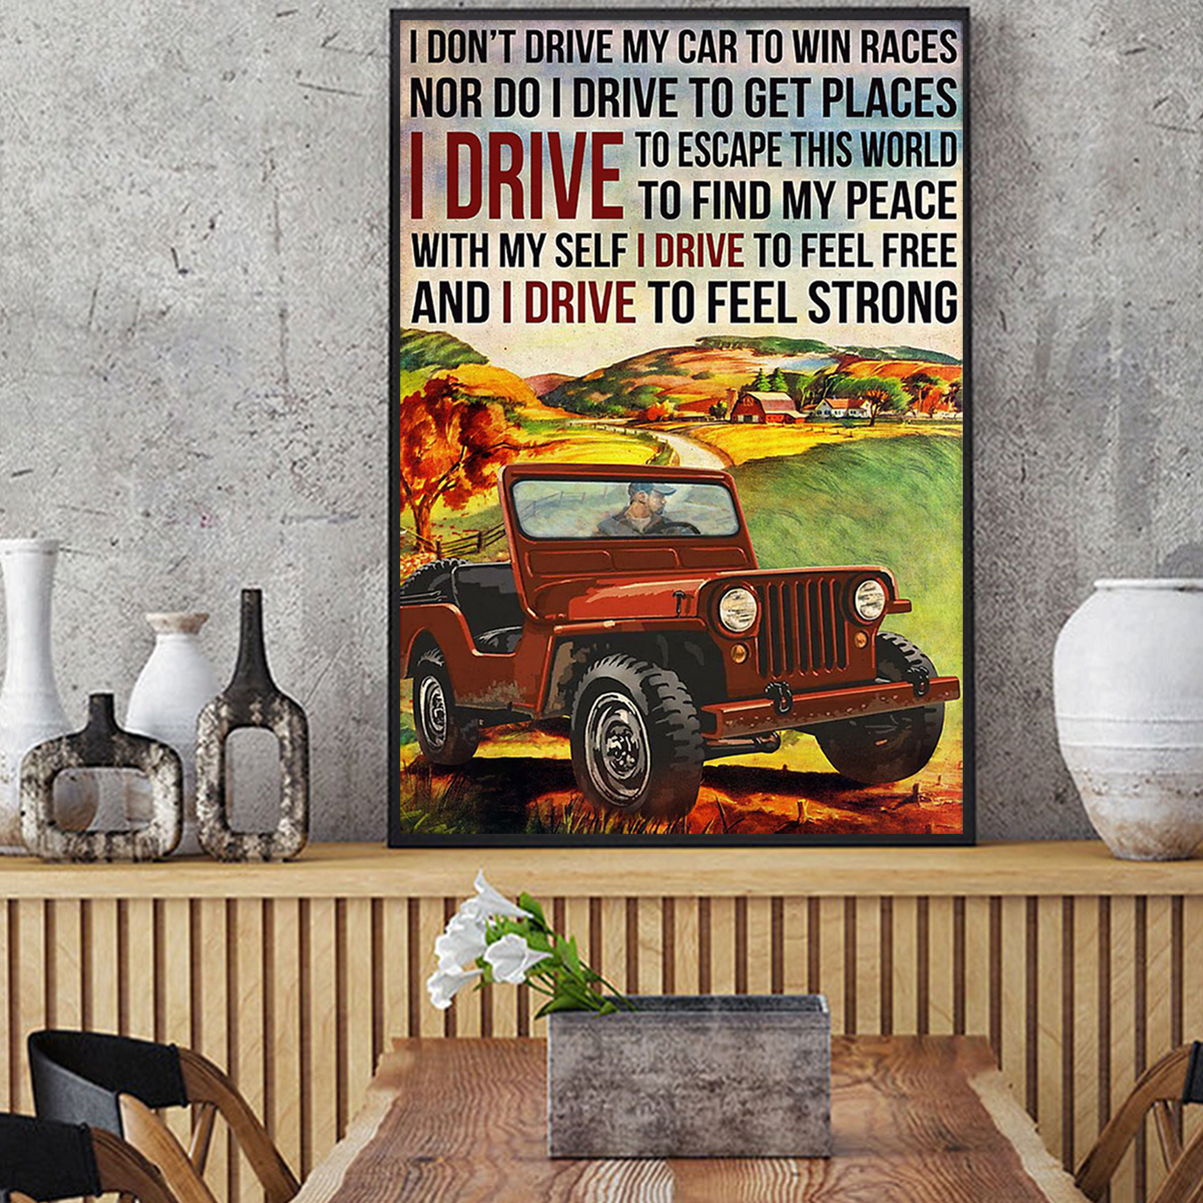 Off-road I don't drive my car to win races poster A2